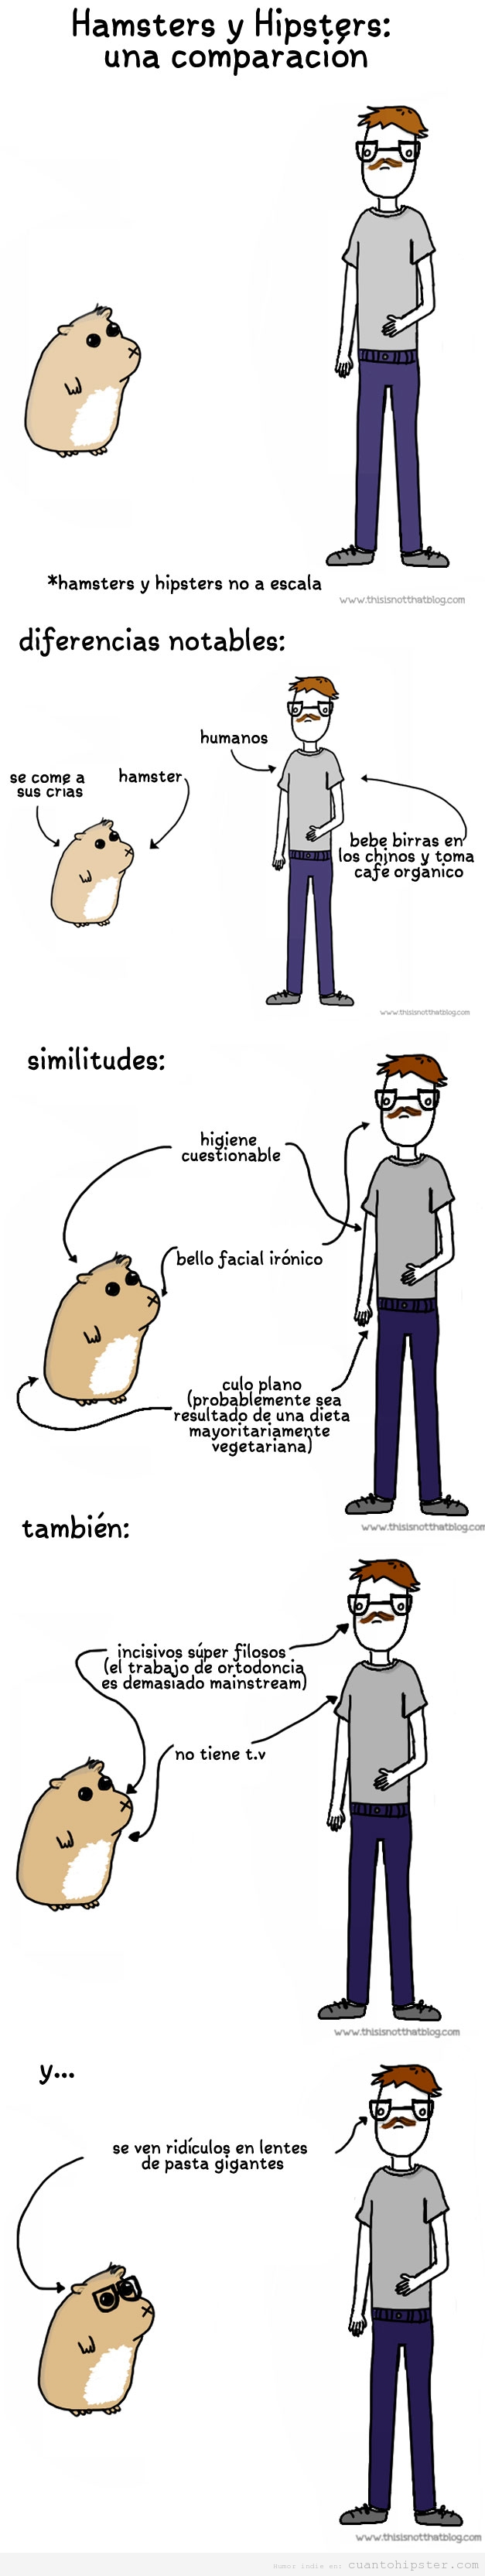 Humor grfico, la comparacin entre hamster y hipster